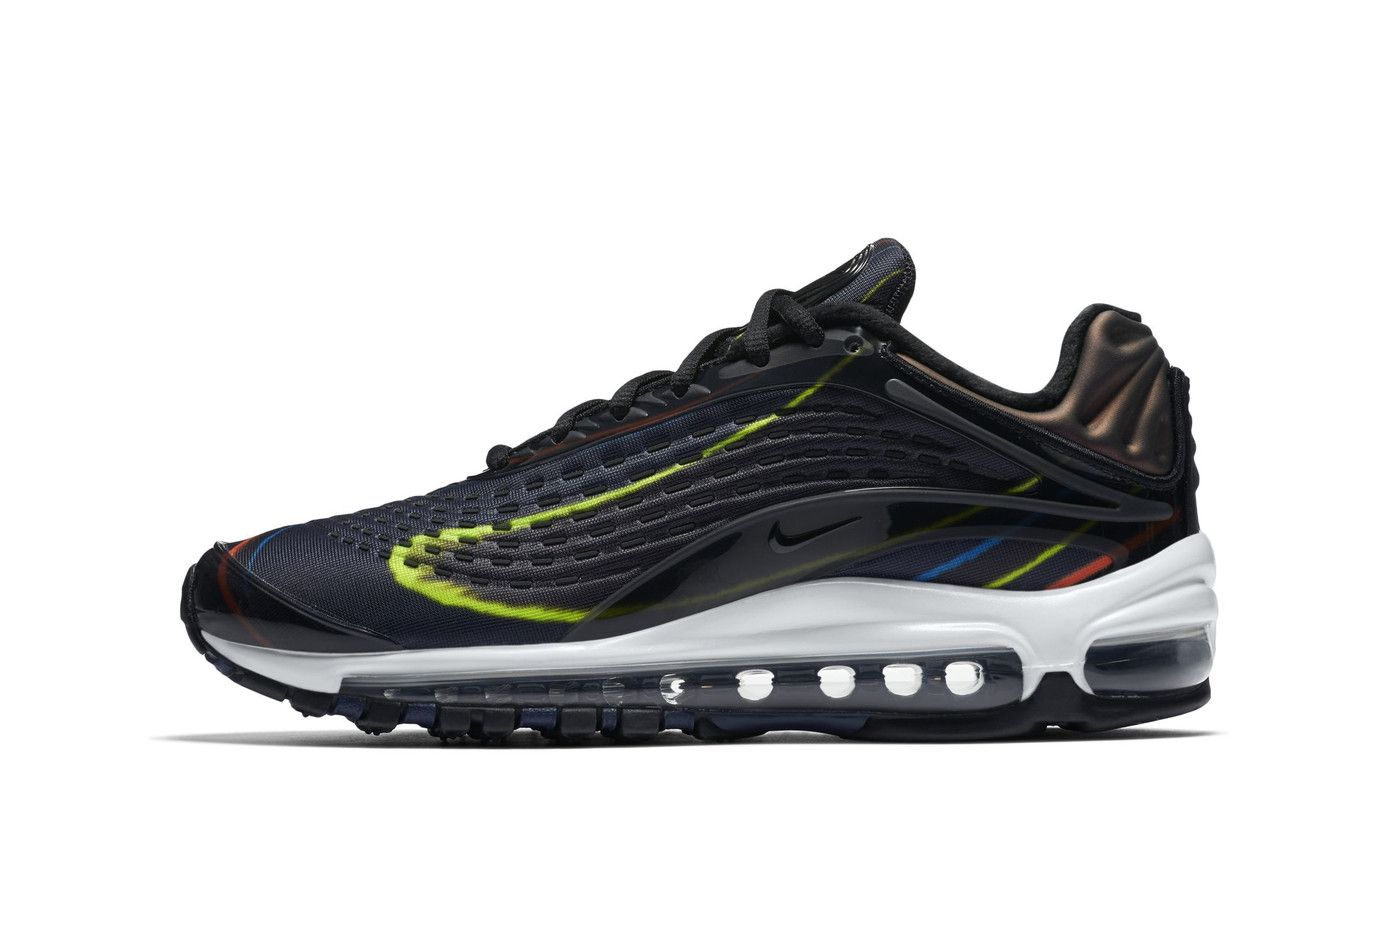 Nike S Air Max Deluxe Gets A Black Midnight Navy Silver Remix